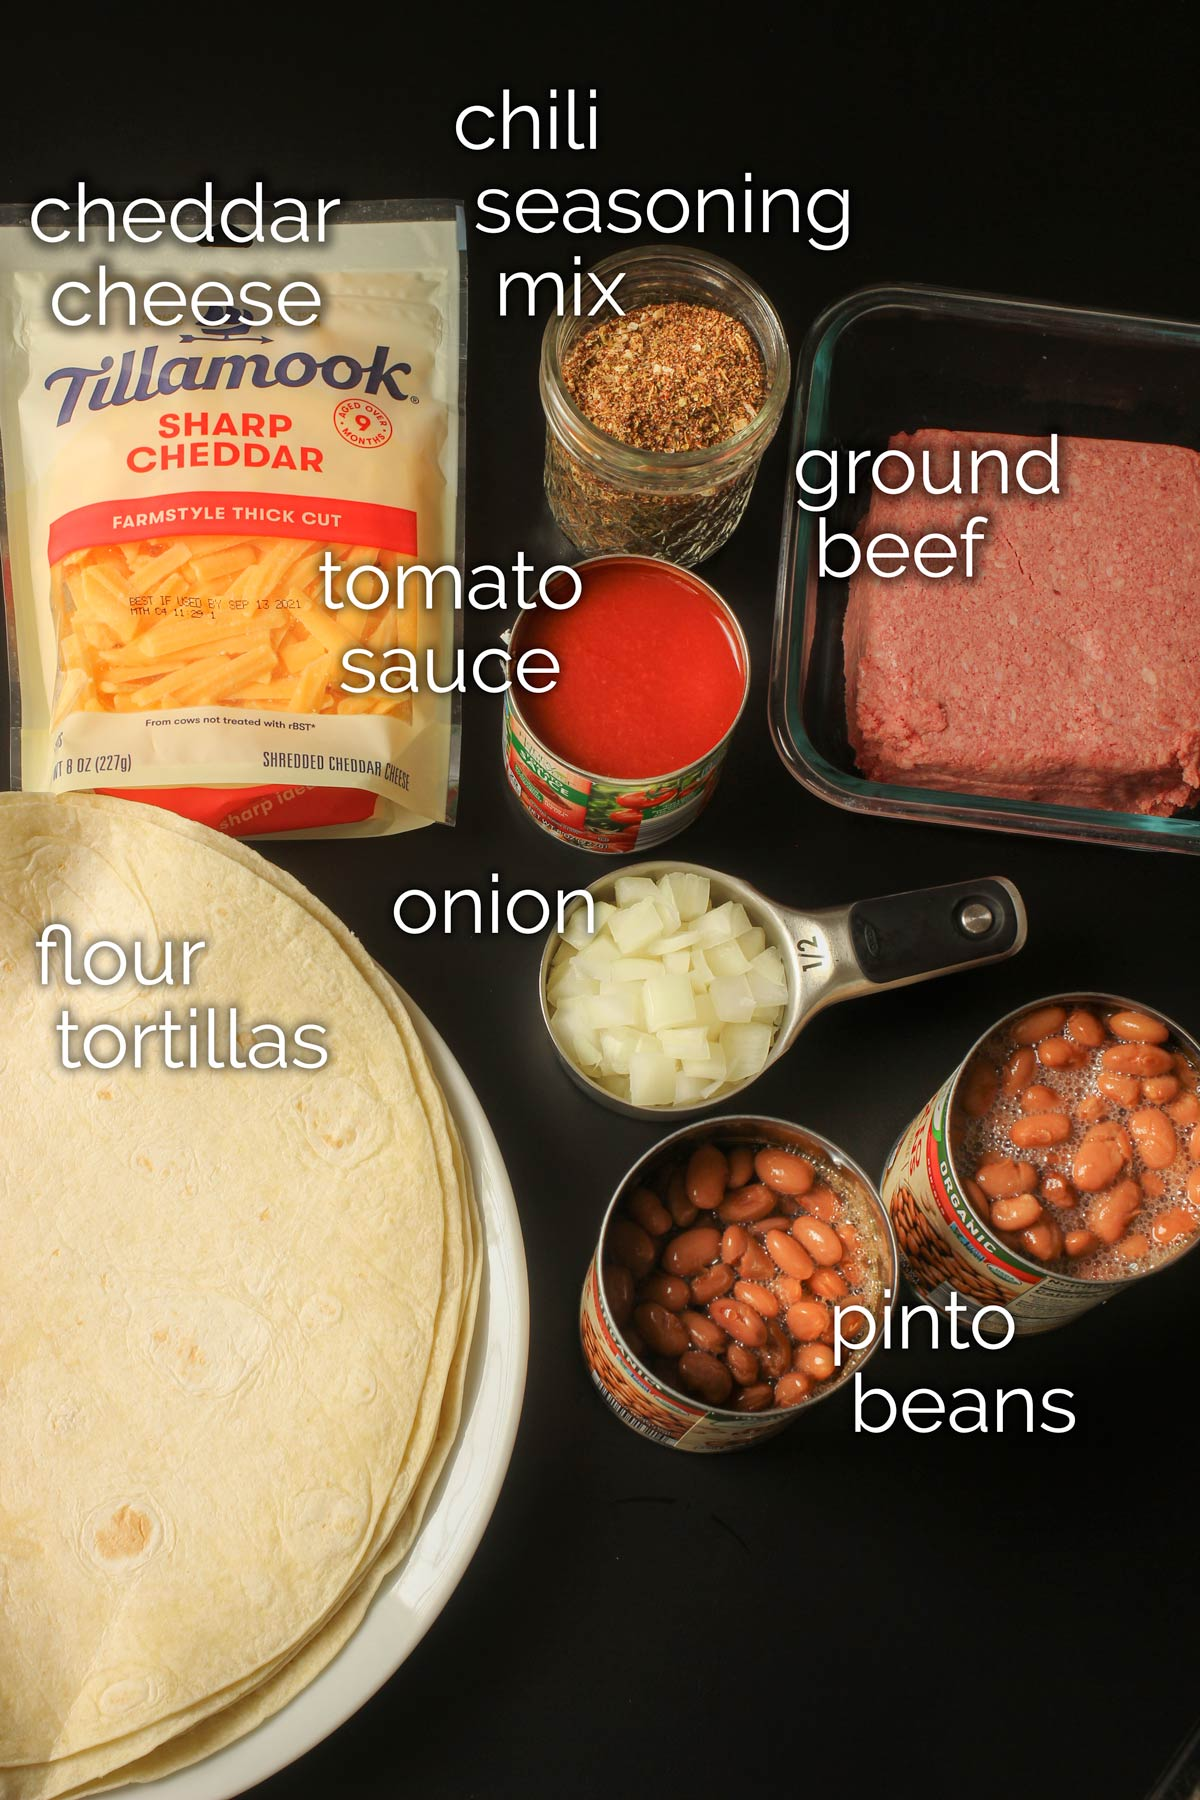 ingredients for chili cheese burritos laid out on tabletop.